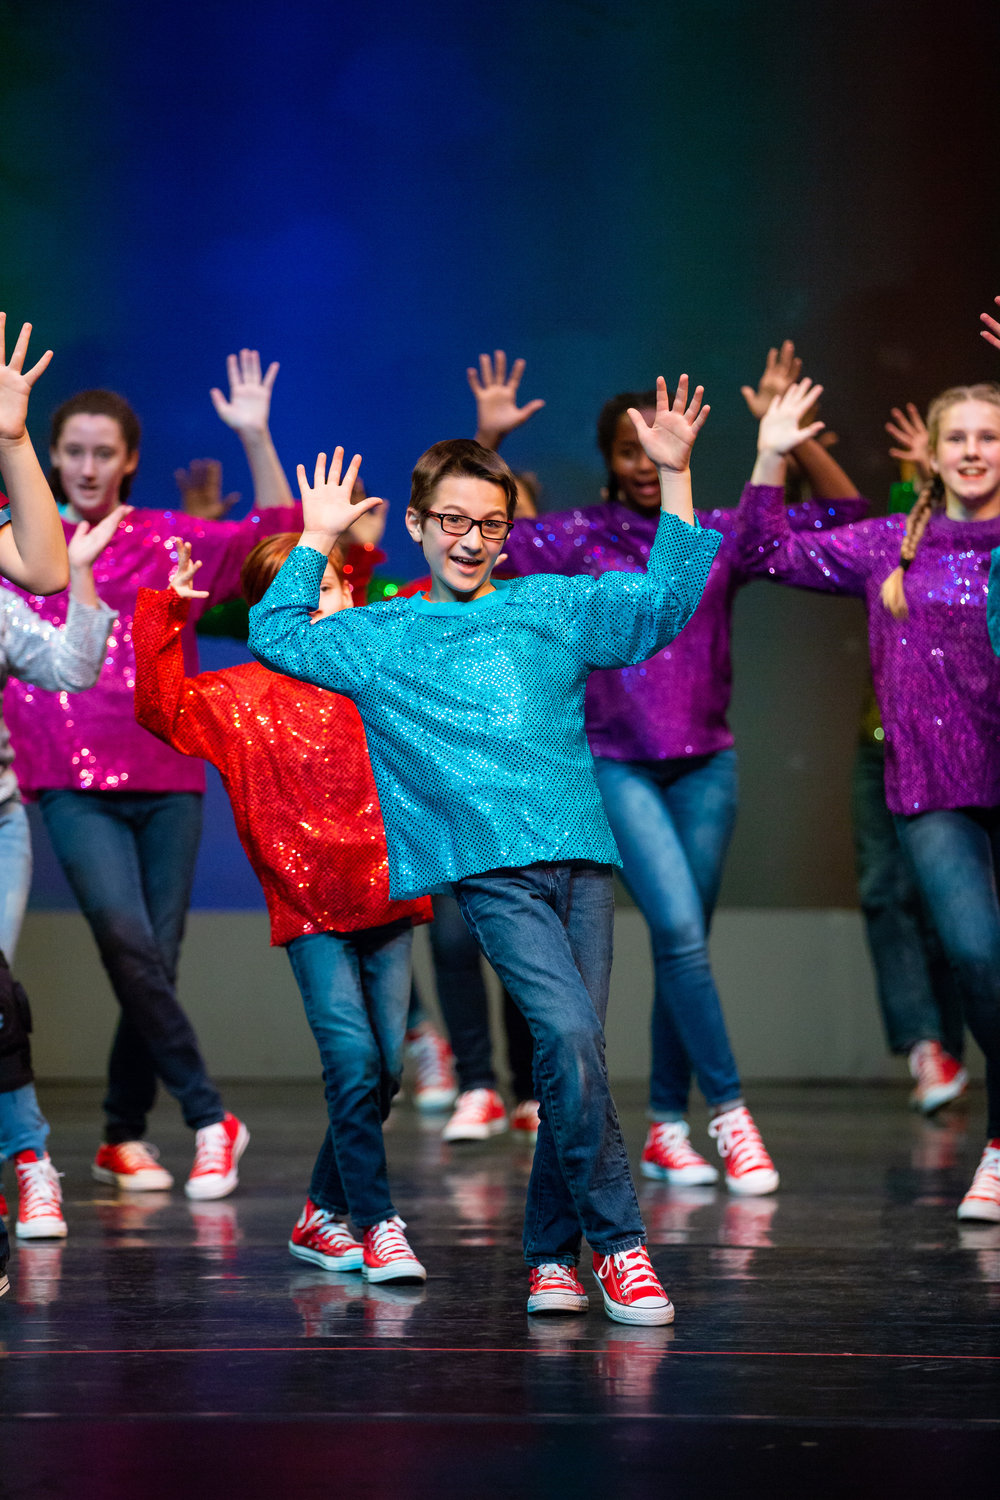 Our Mission - The mission of New Hampshire Dance Institute is to enrich the educational, intellectual, physical, and social well-being of school children — inclusive of all abilities and backgrounds — by instilling confidence and discipline through the joy of dance and music.